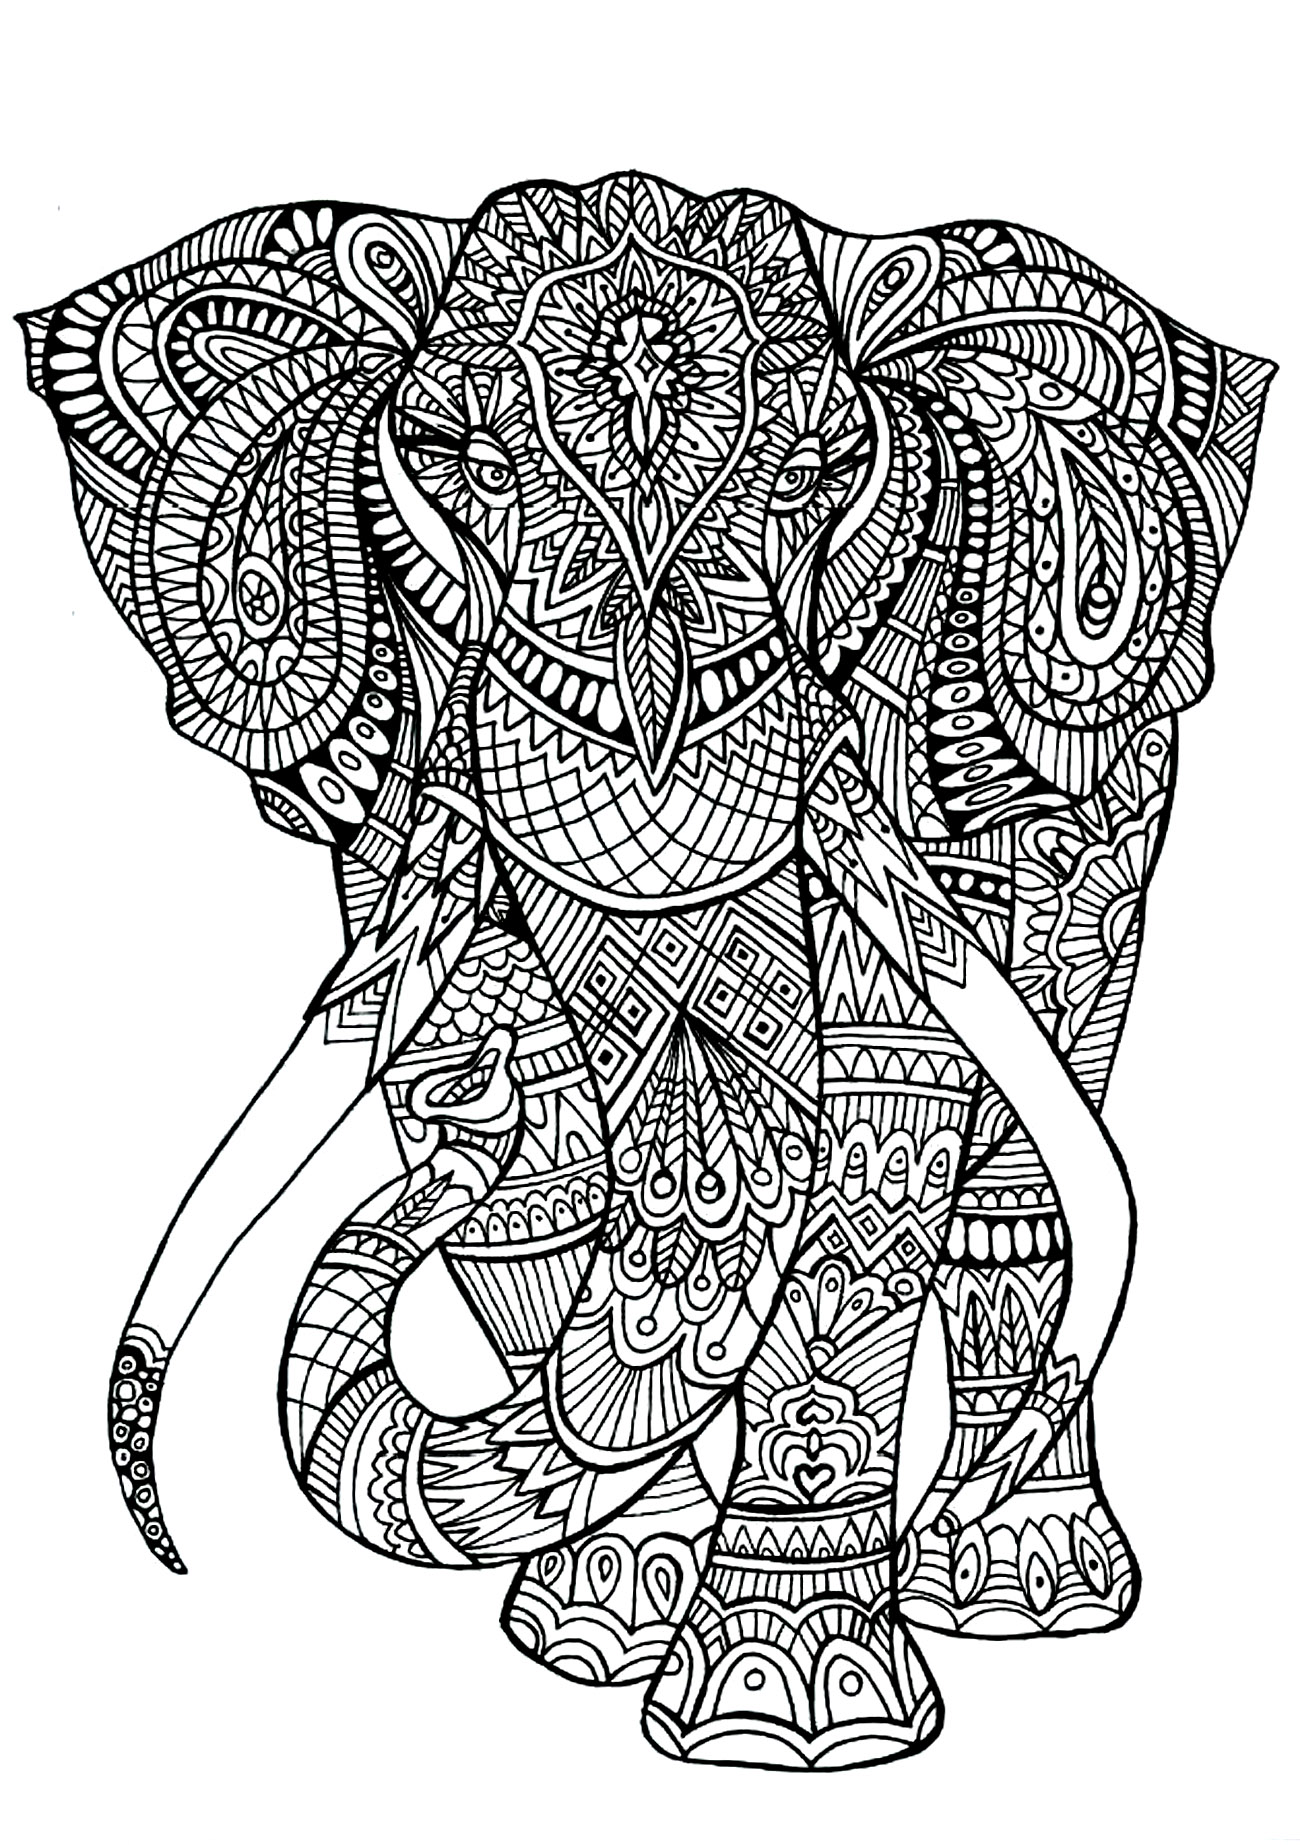 a big elephant full of details from the gallery insects - Coloring Pages Animals